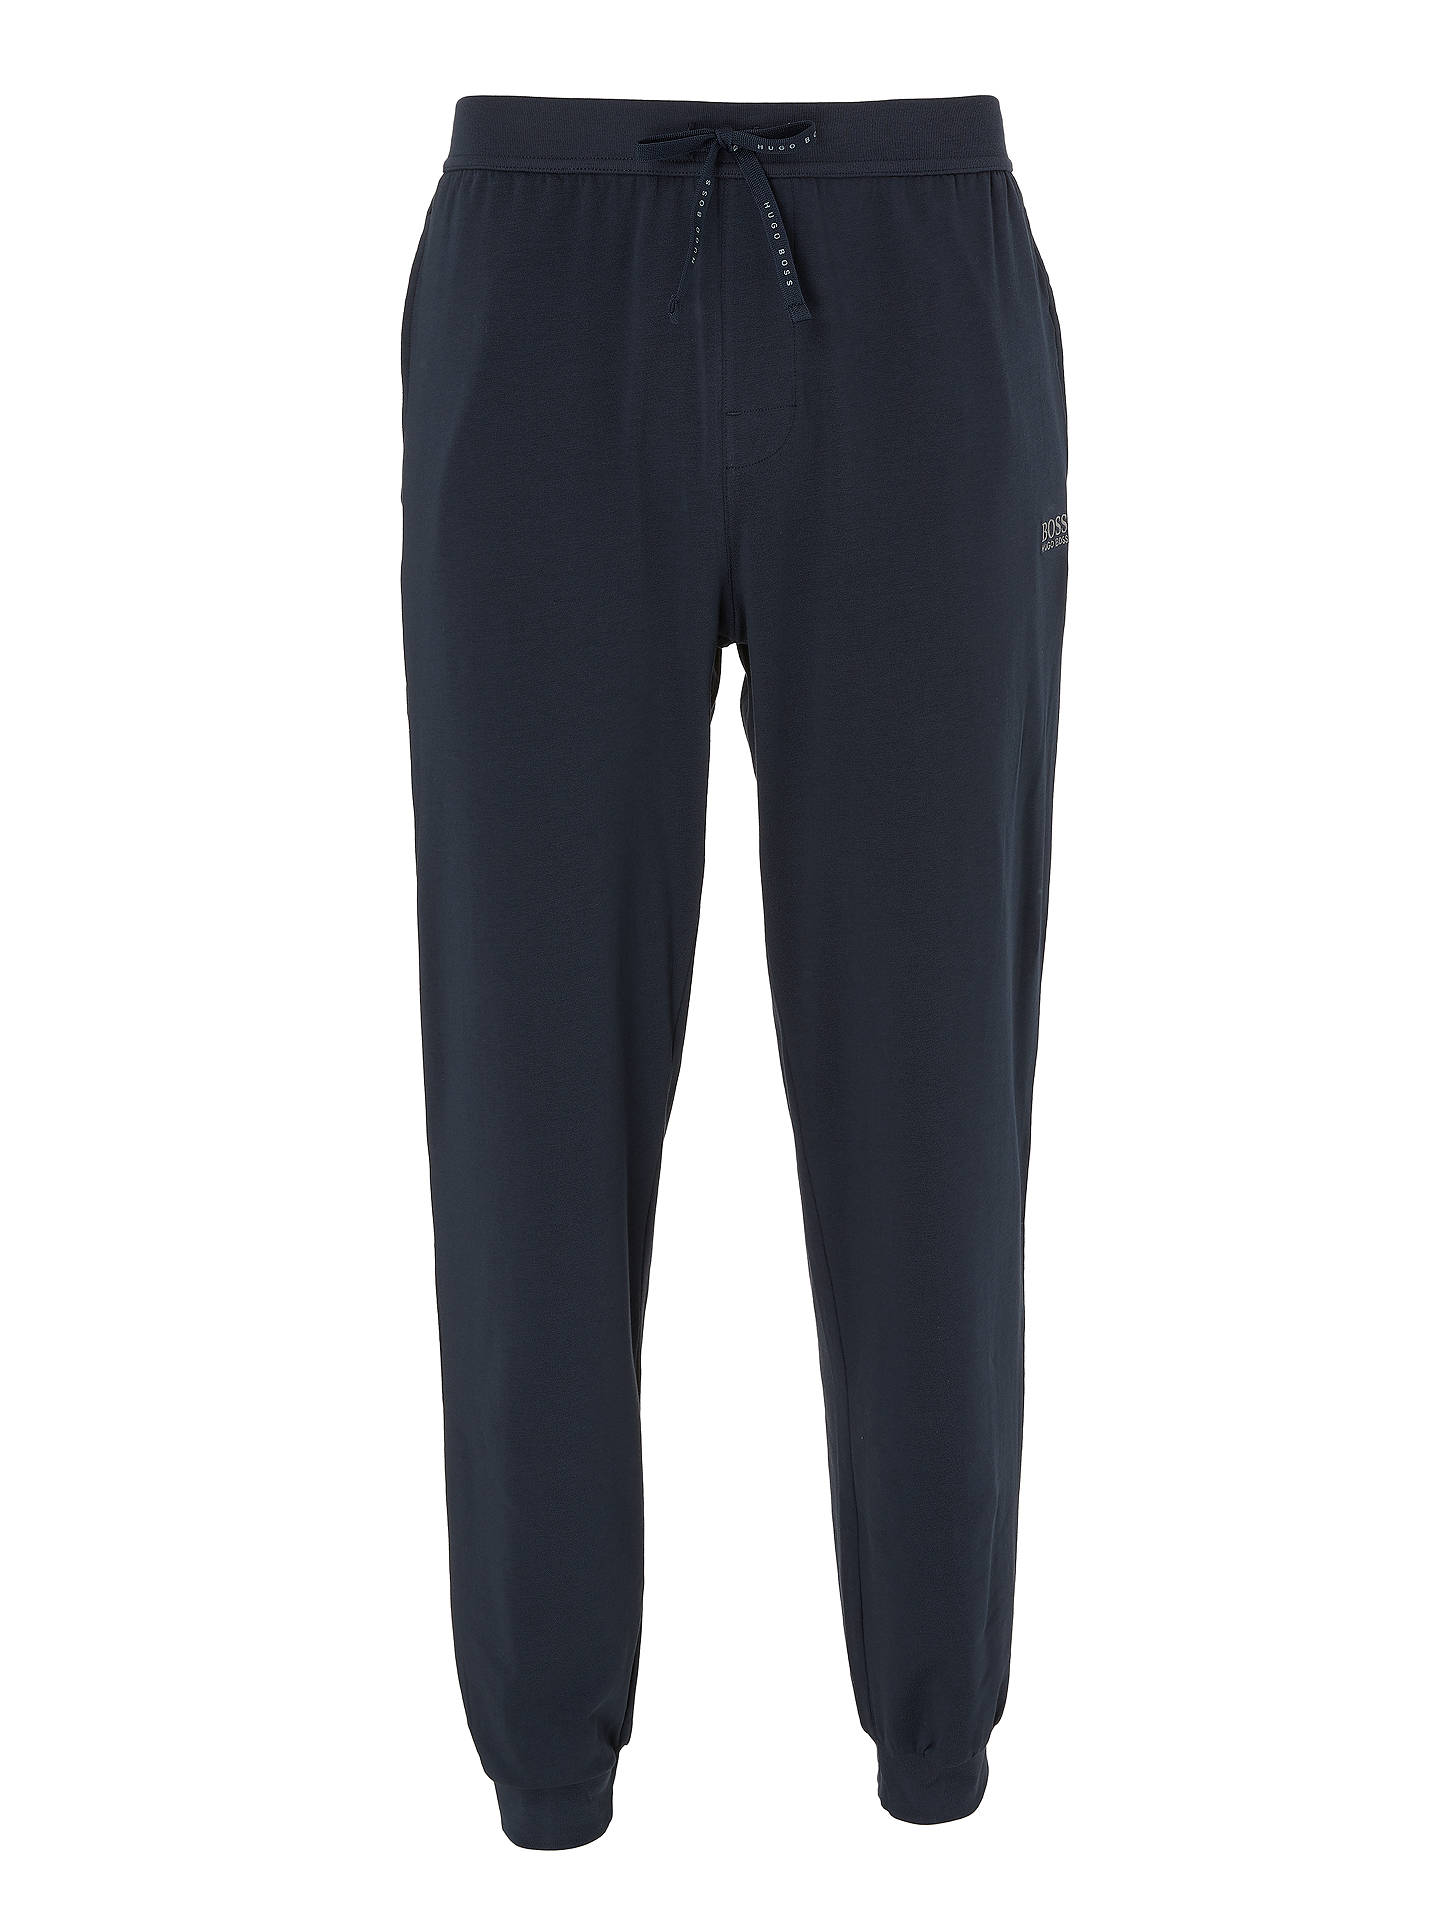 BuyBOSS Mix And Match Jogging Bottoms, Navy, M Online at johnlewis.com